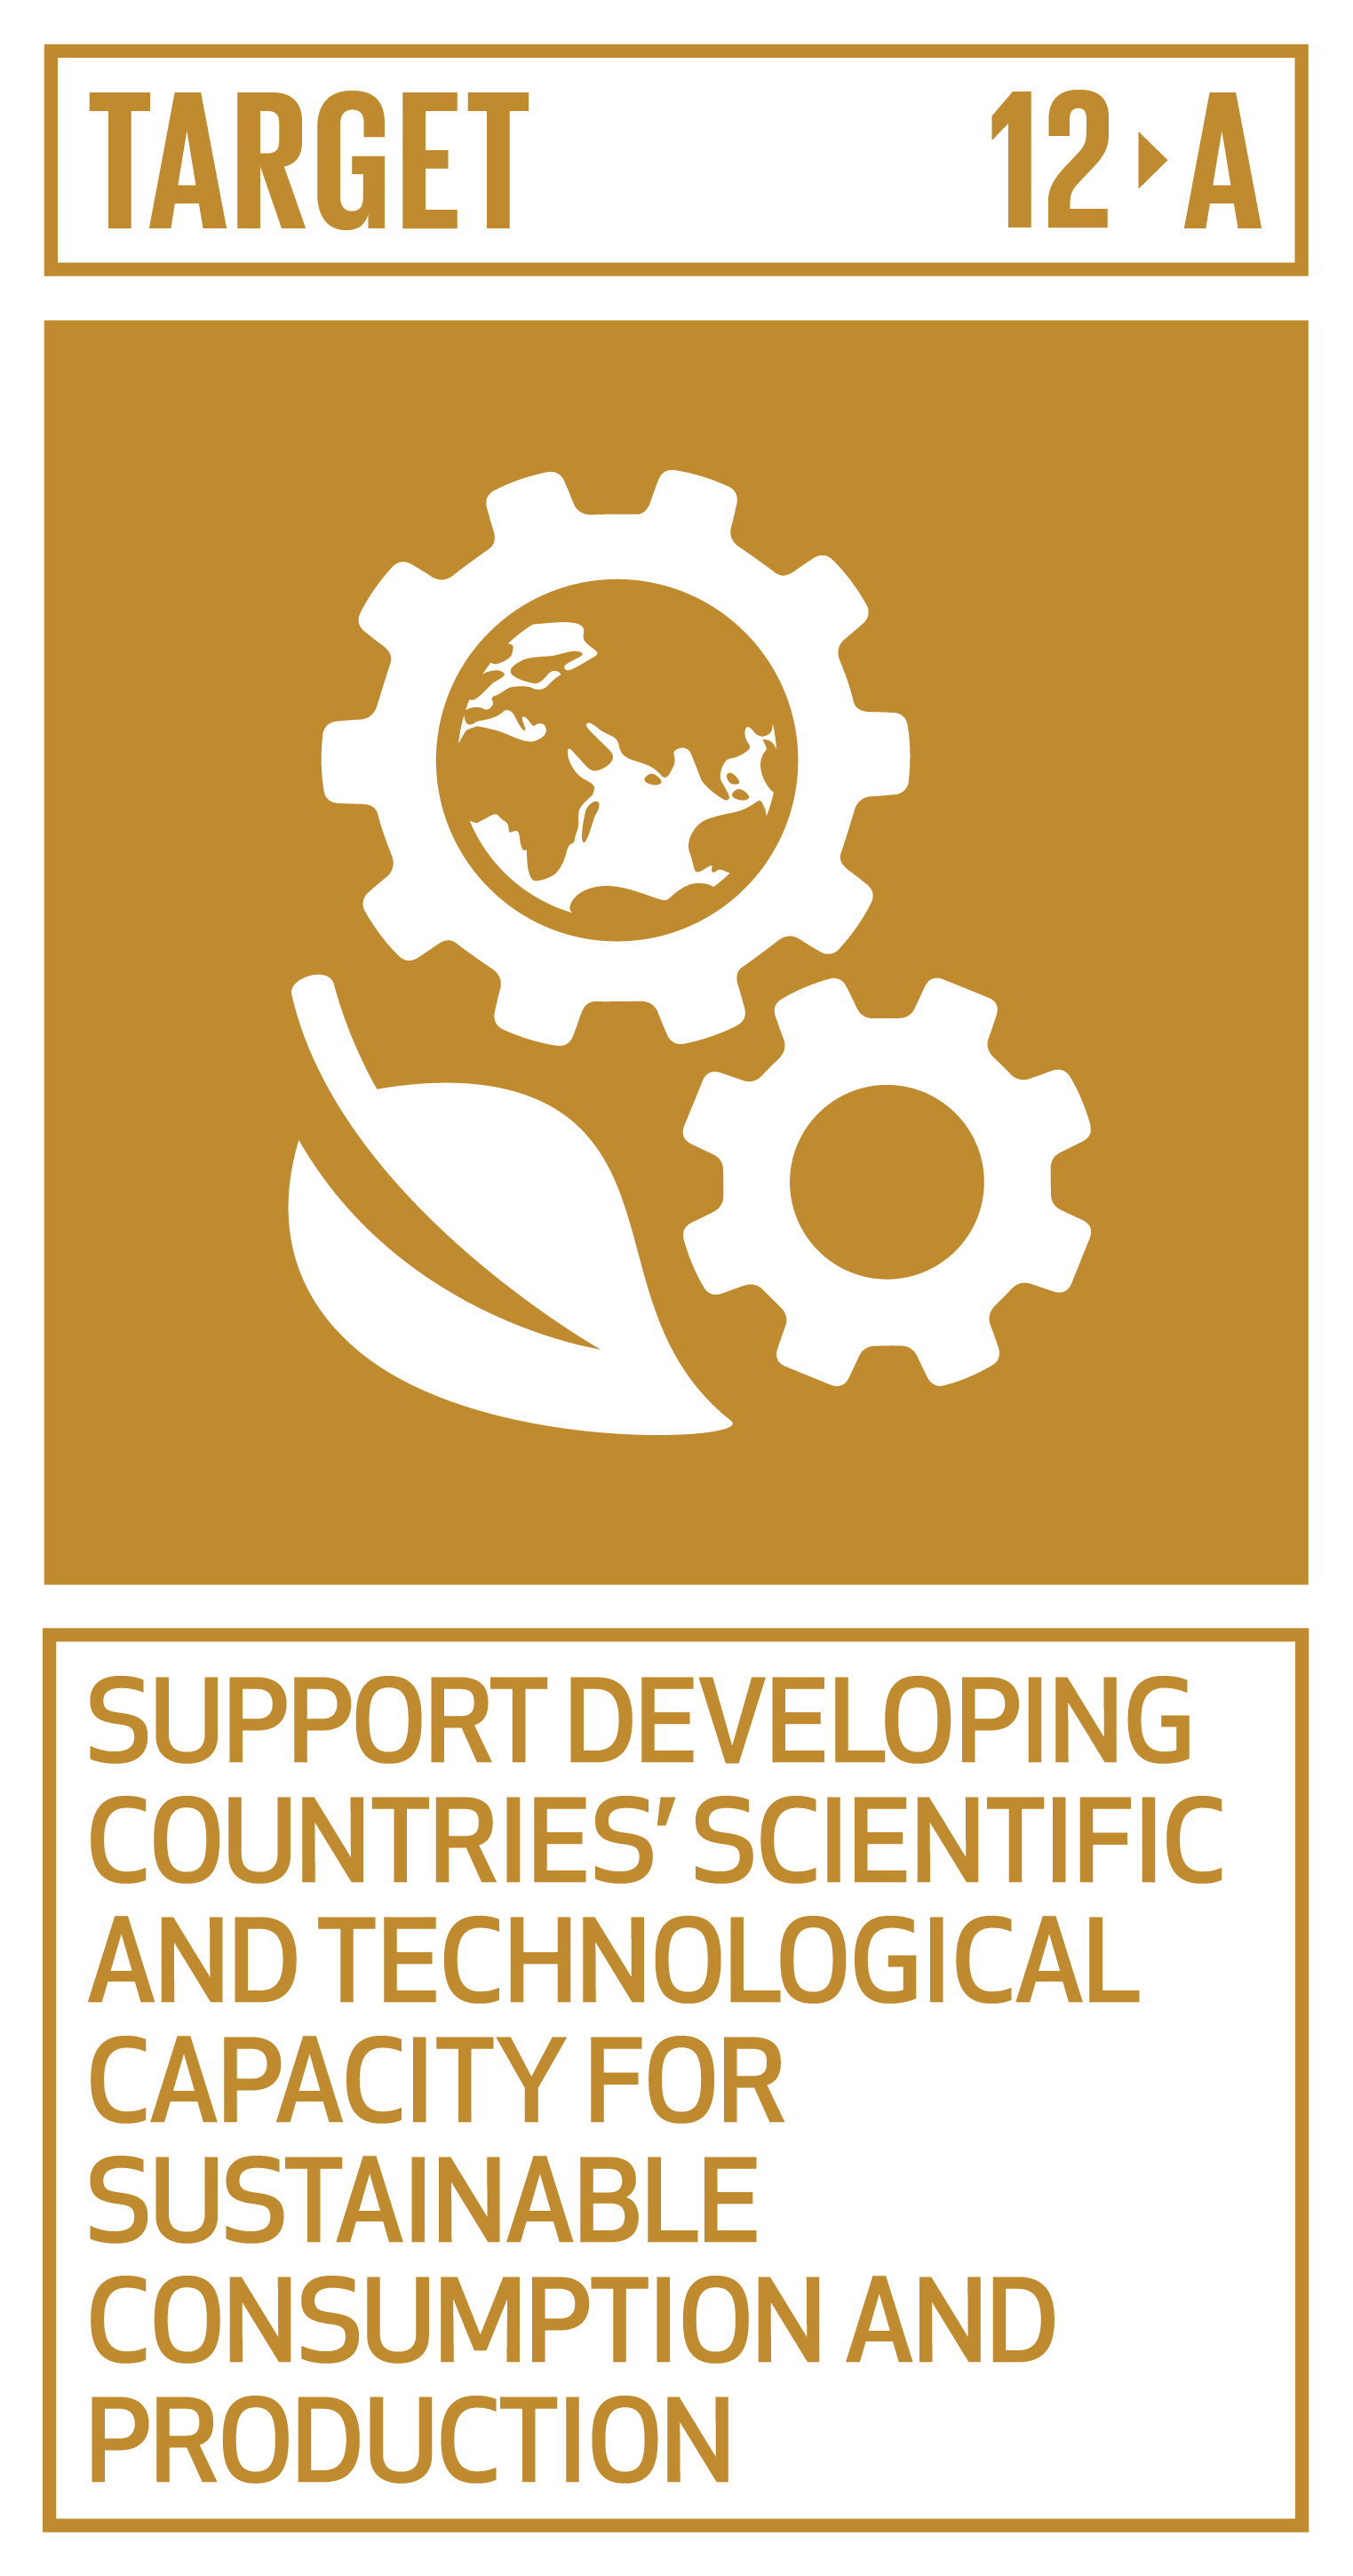 Support developing countries to strengthen their scientific and technological capacity to move towards more sustainable patterns of consumption and production.   INDICATOR    12.a.1  Amount of support to developing countries on research and development for sustainable consumption and production and environmentally sound technologies